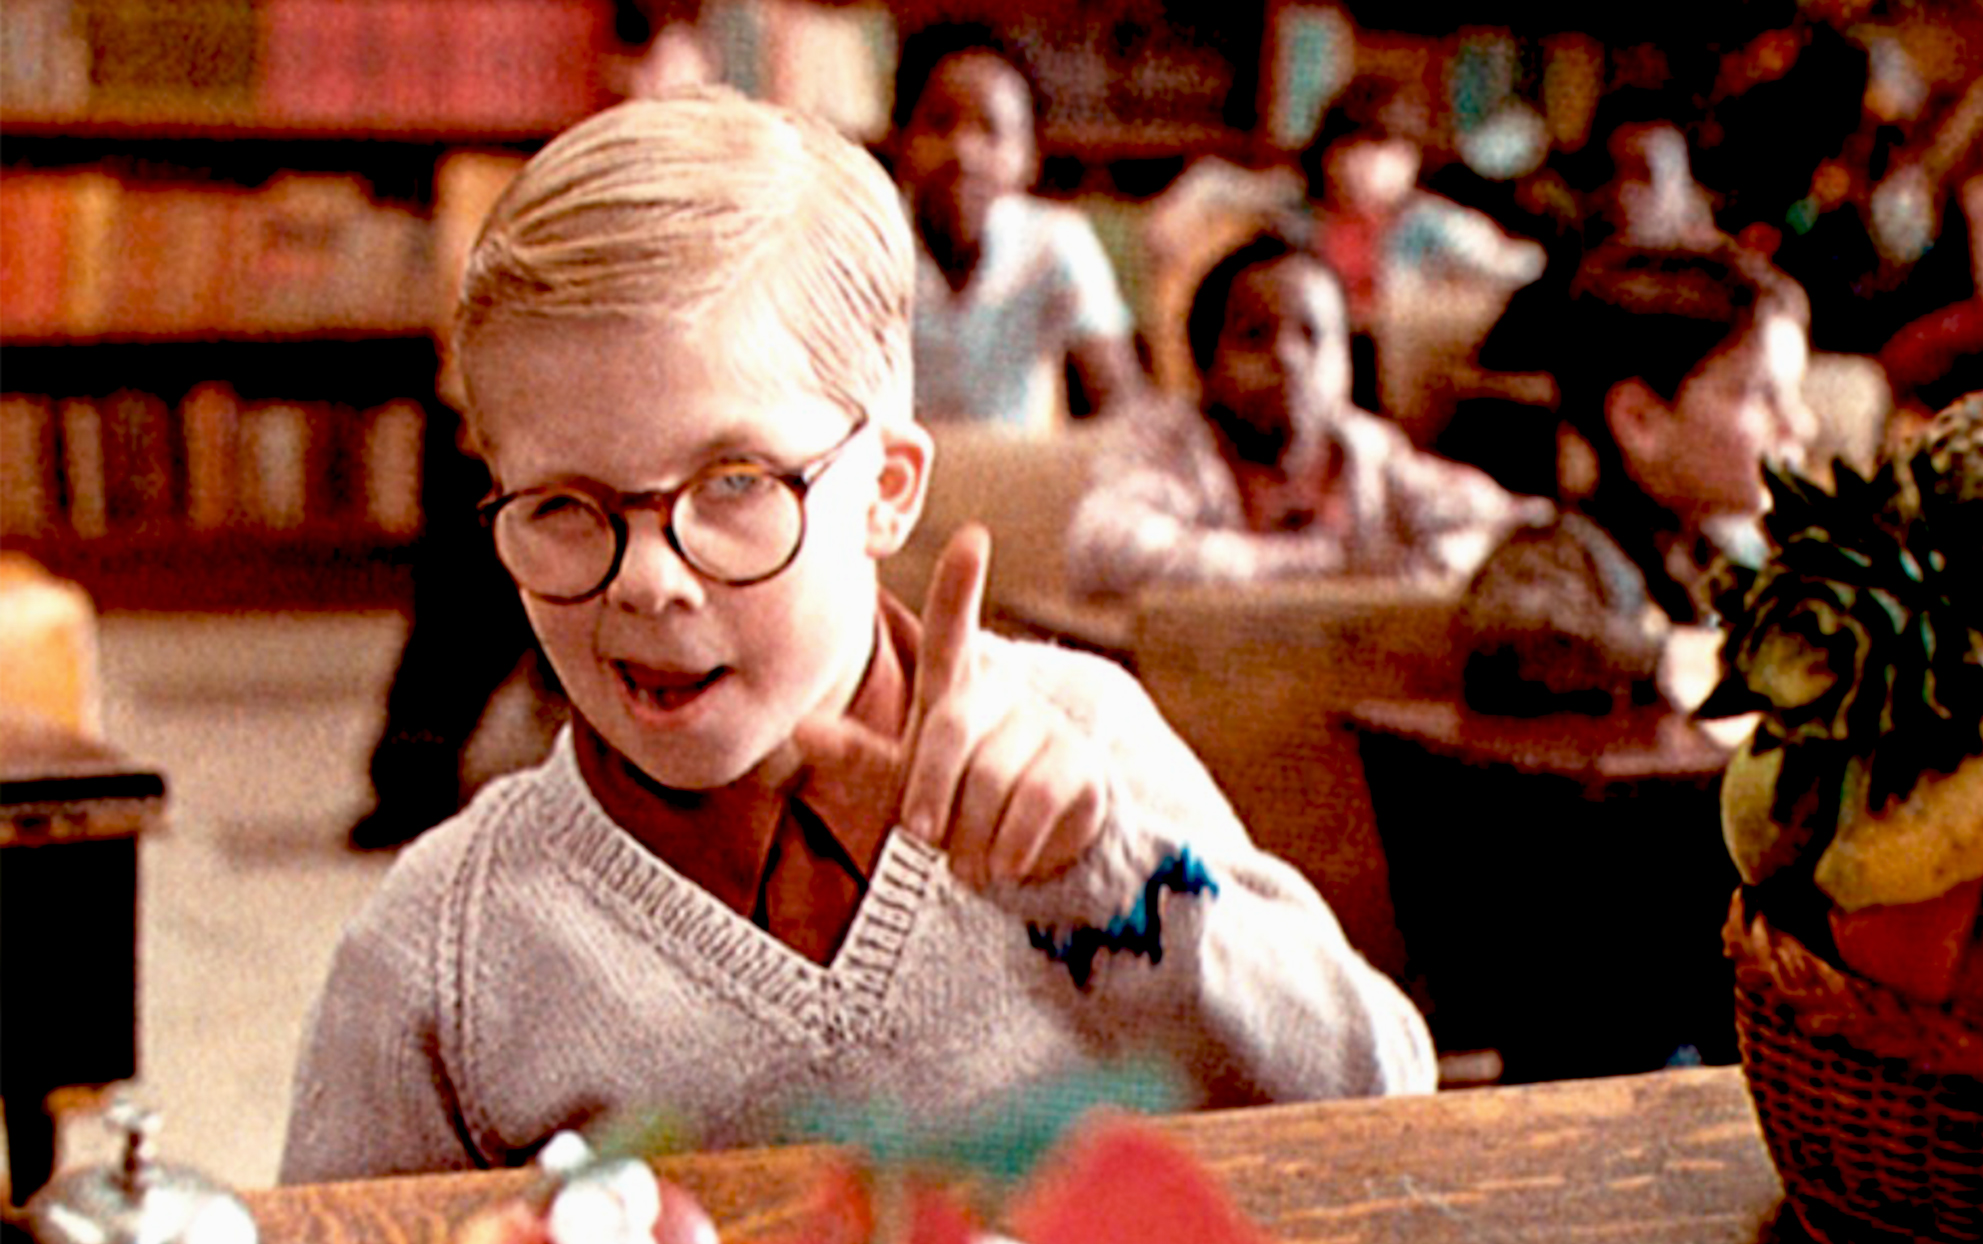 movie still from A Christmas Story of the character Ralphie